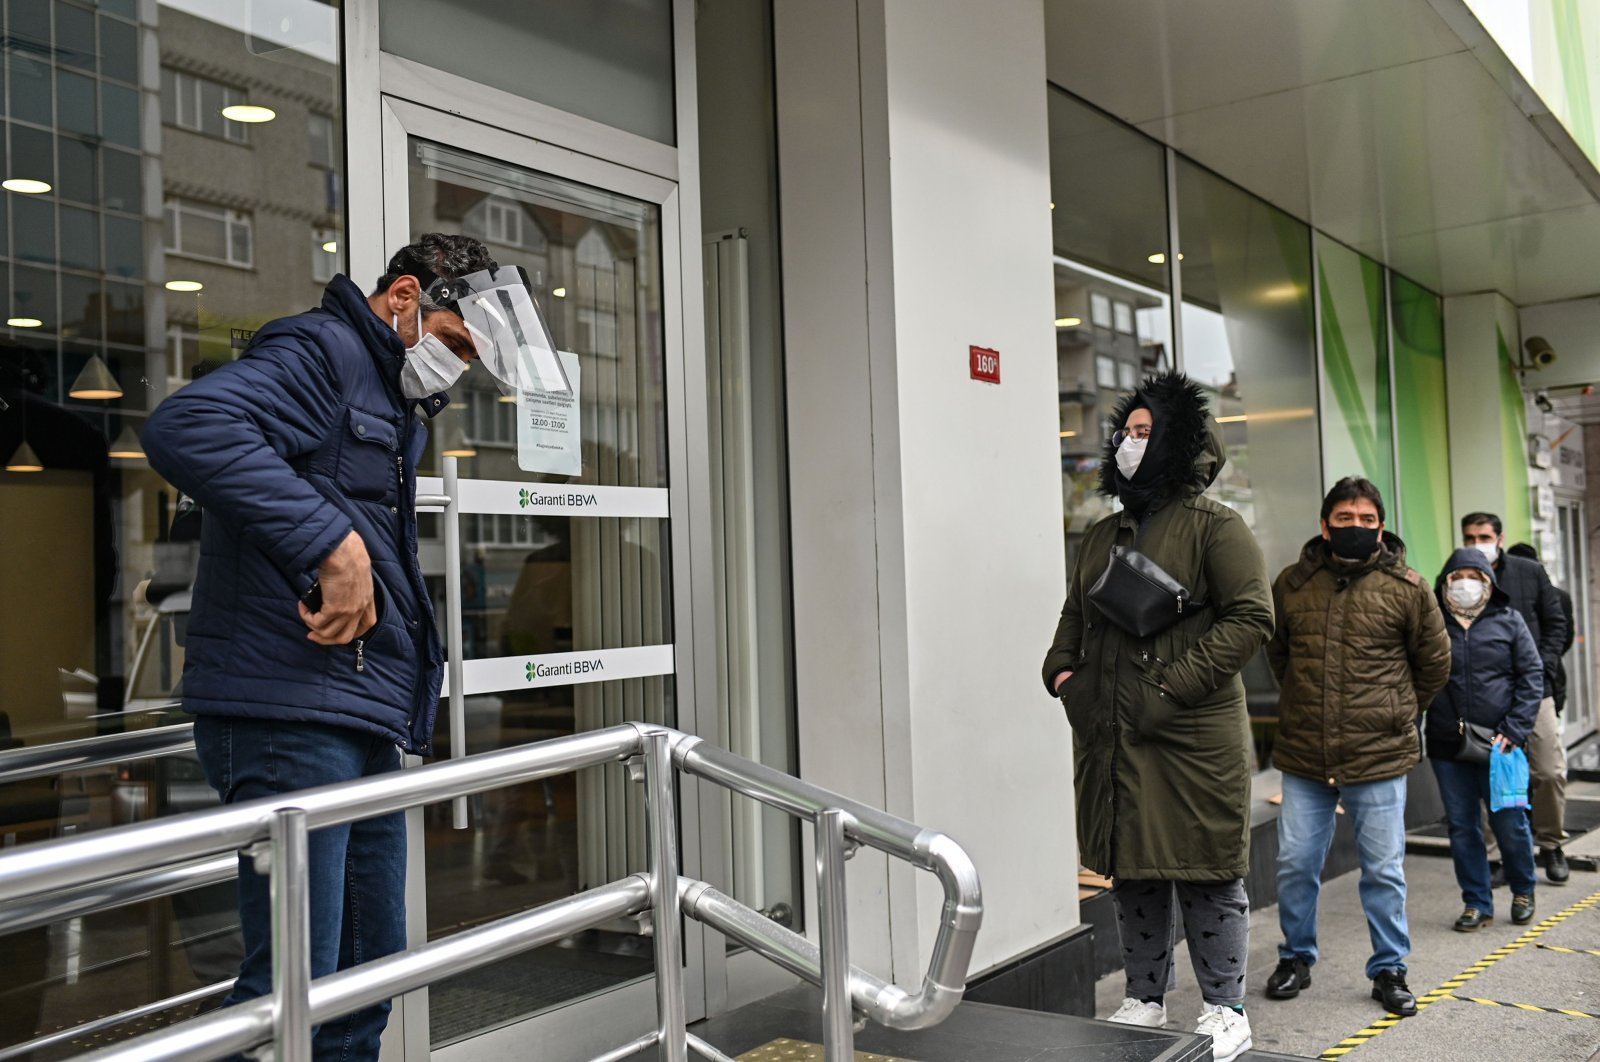 People queue observing social distancing outside a bank in Gaziosmanpaşa in Istanbul, Turkey, April 21, 2020, amid the COVID-19 pandemic. (AFP Photo)